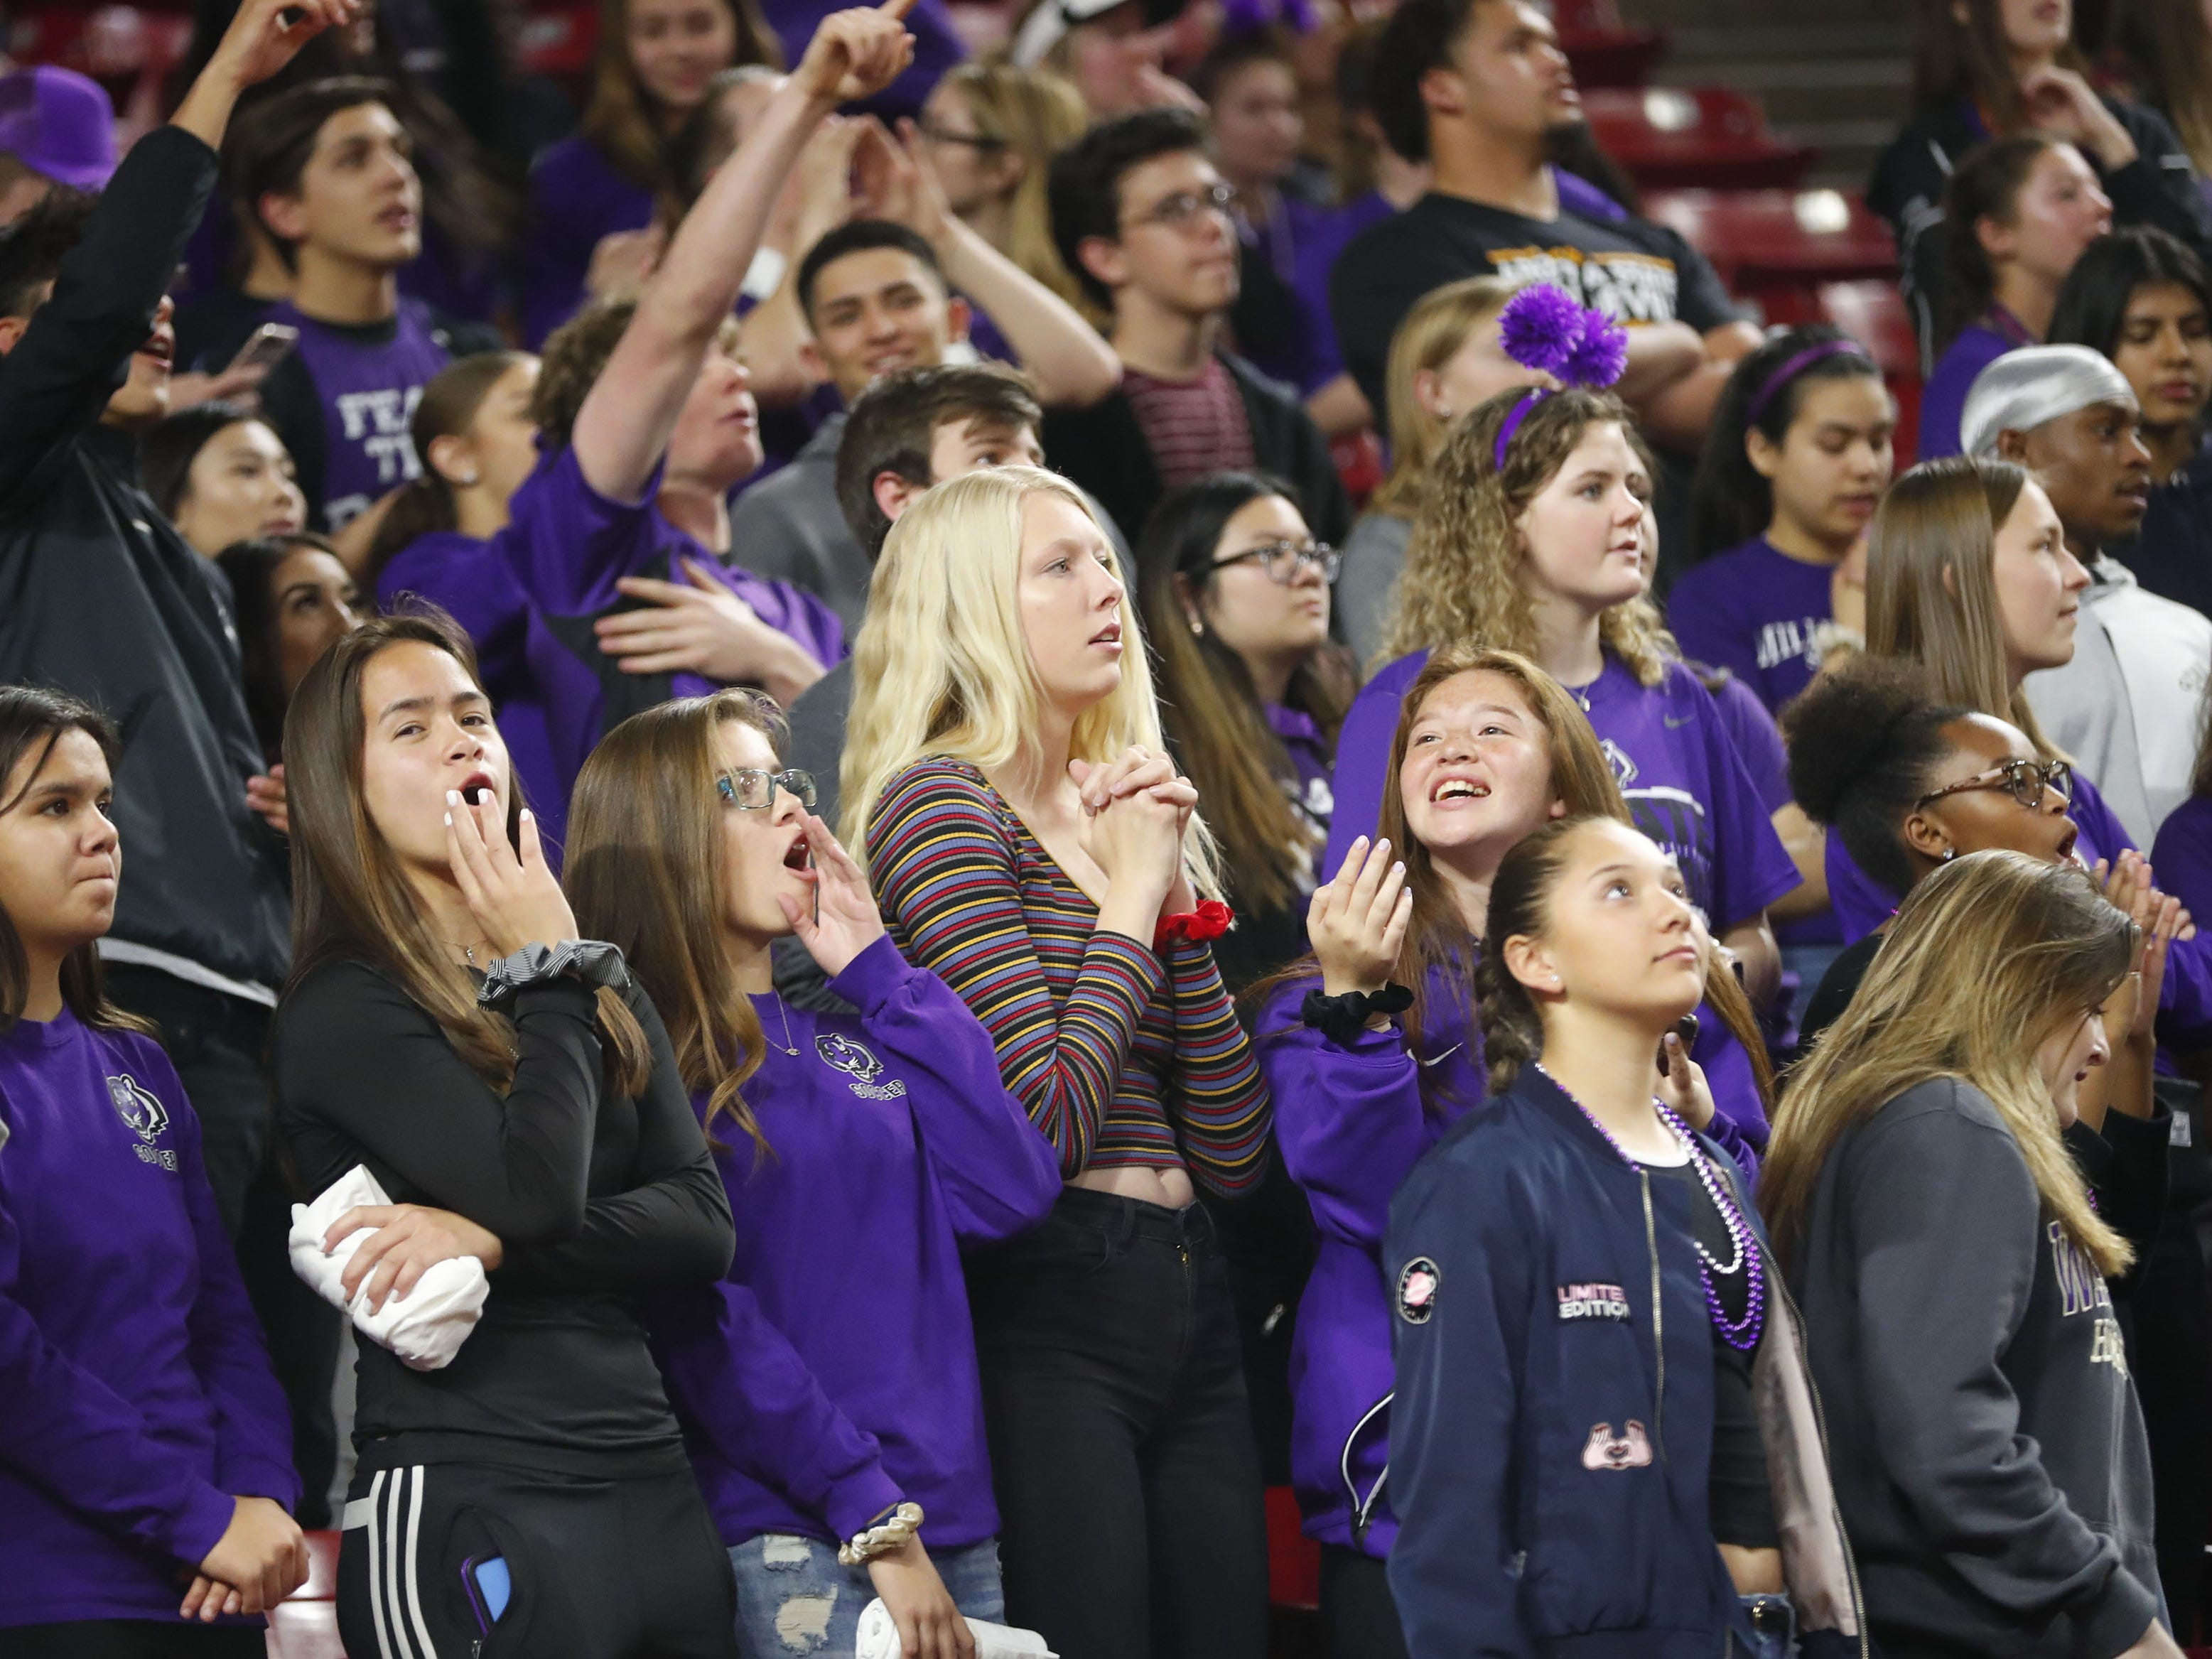 Millennium students cheer against Gilbert during the Girls State 5A Championship game in Tempe, Ariz. Feb. 25, 2019.